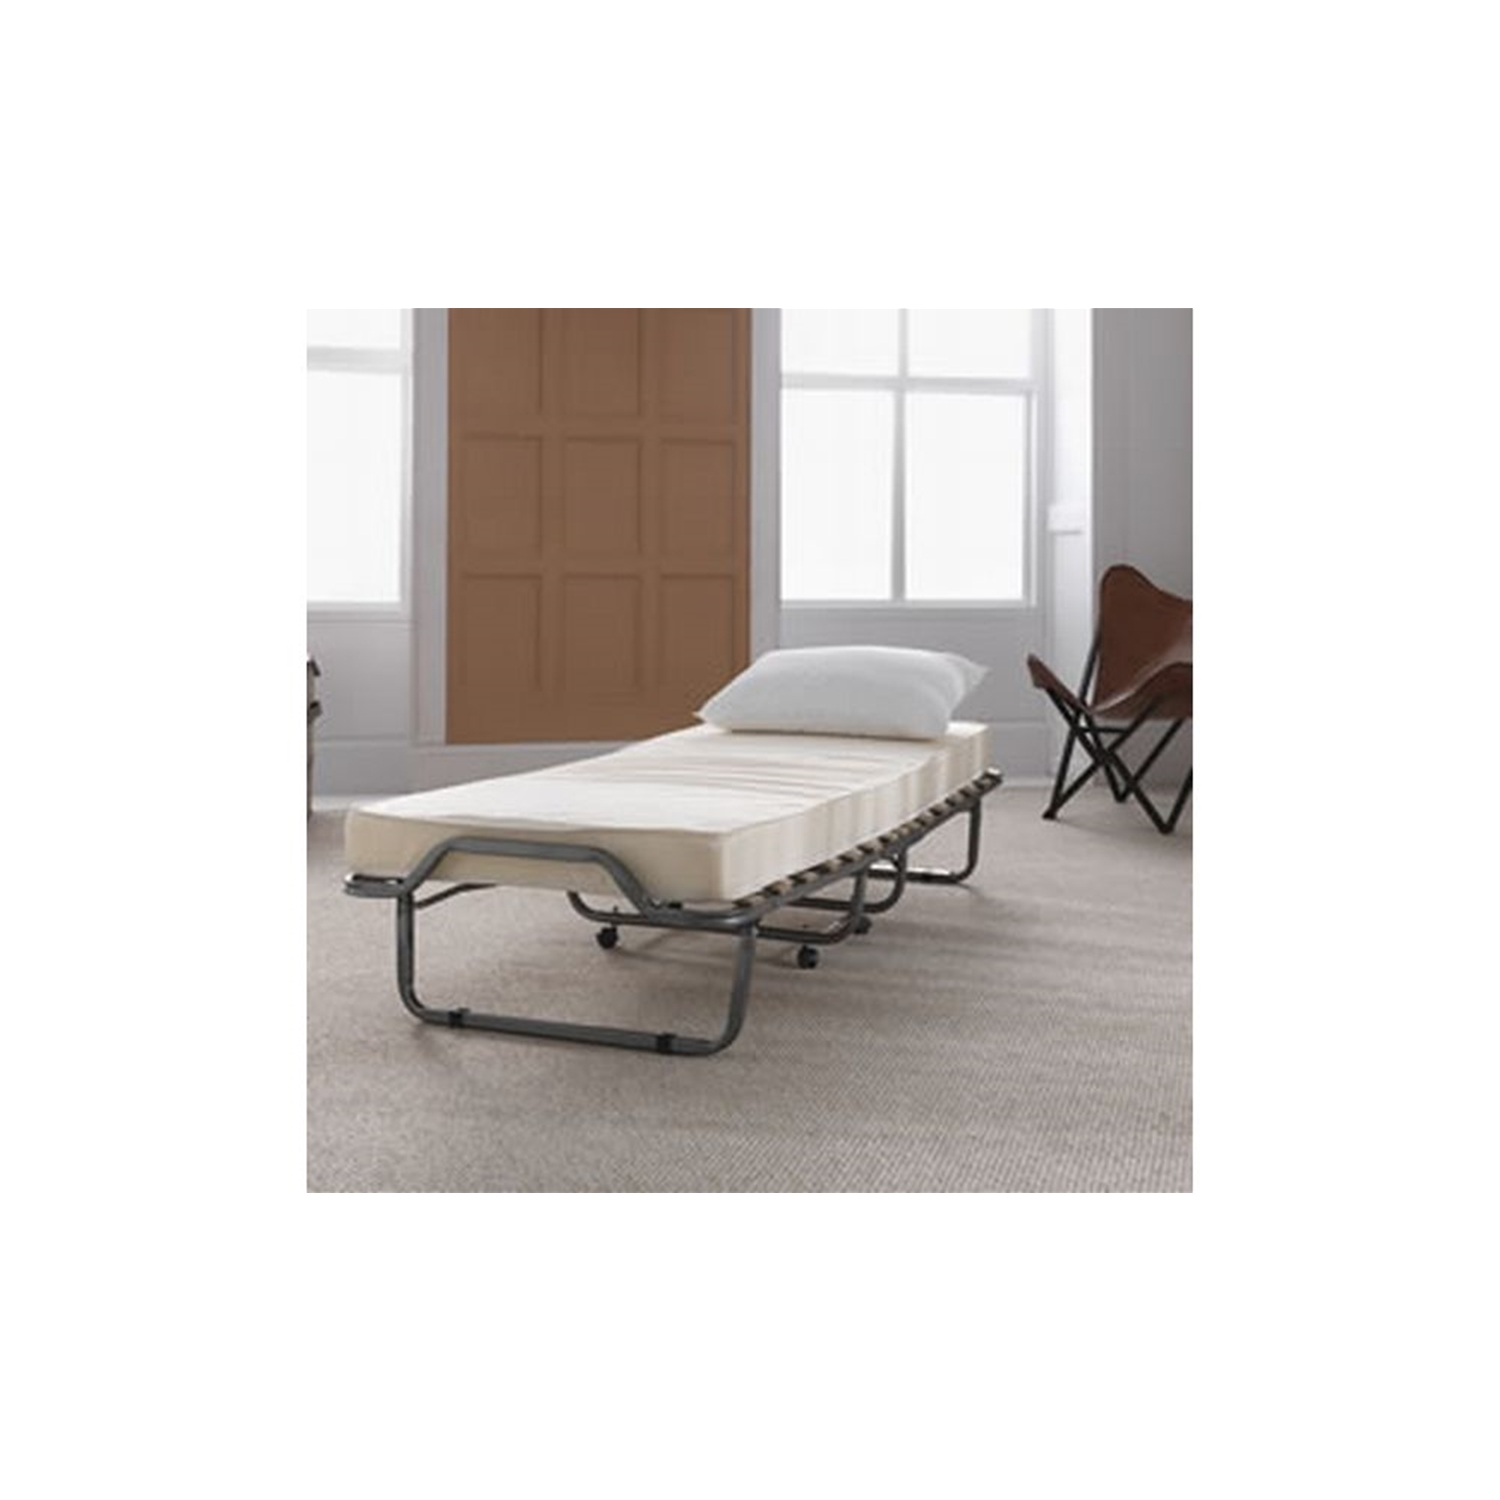 Image of Casa Luxor 120cm Folding Bed, Small Double